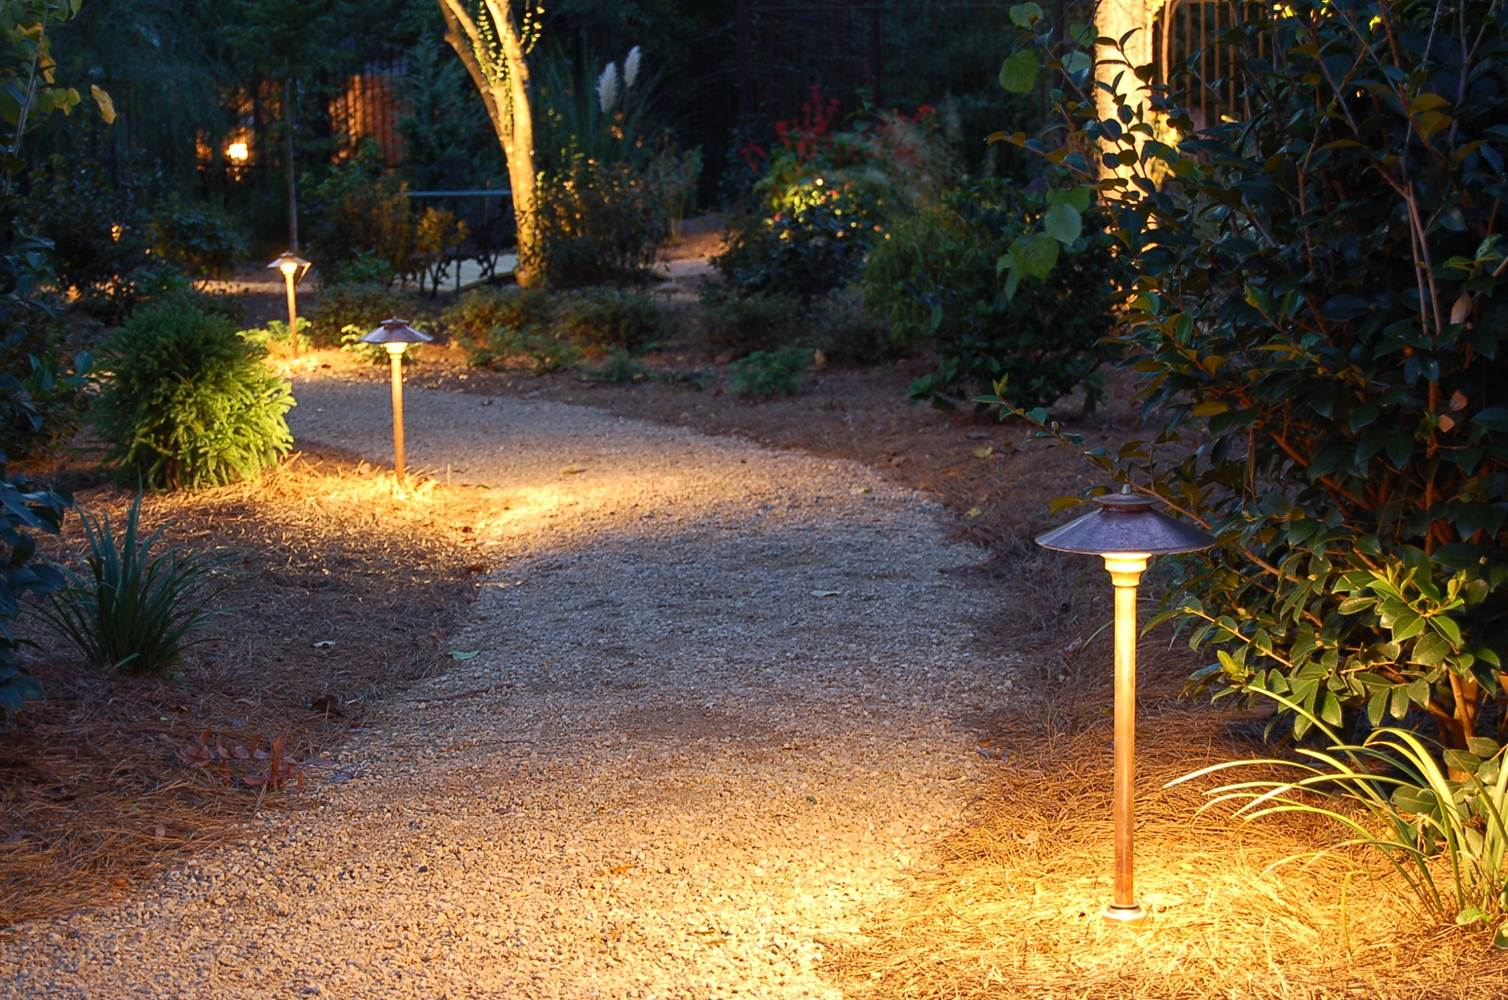 5 Perfect Path Lights For The Home - Louie Lighting Blog on front walkway ideas, accessories ideas, october wedding decoration ideas, landscaping ideas, path paving ideas, diy walkway ideas, walkways and pathways ideas, diy painting ideas, rock painting ideas, solar light ideas, path garden ideas, solar powered ideas,